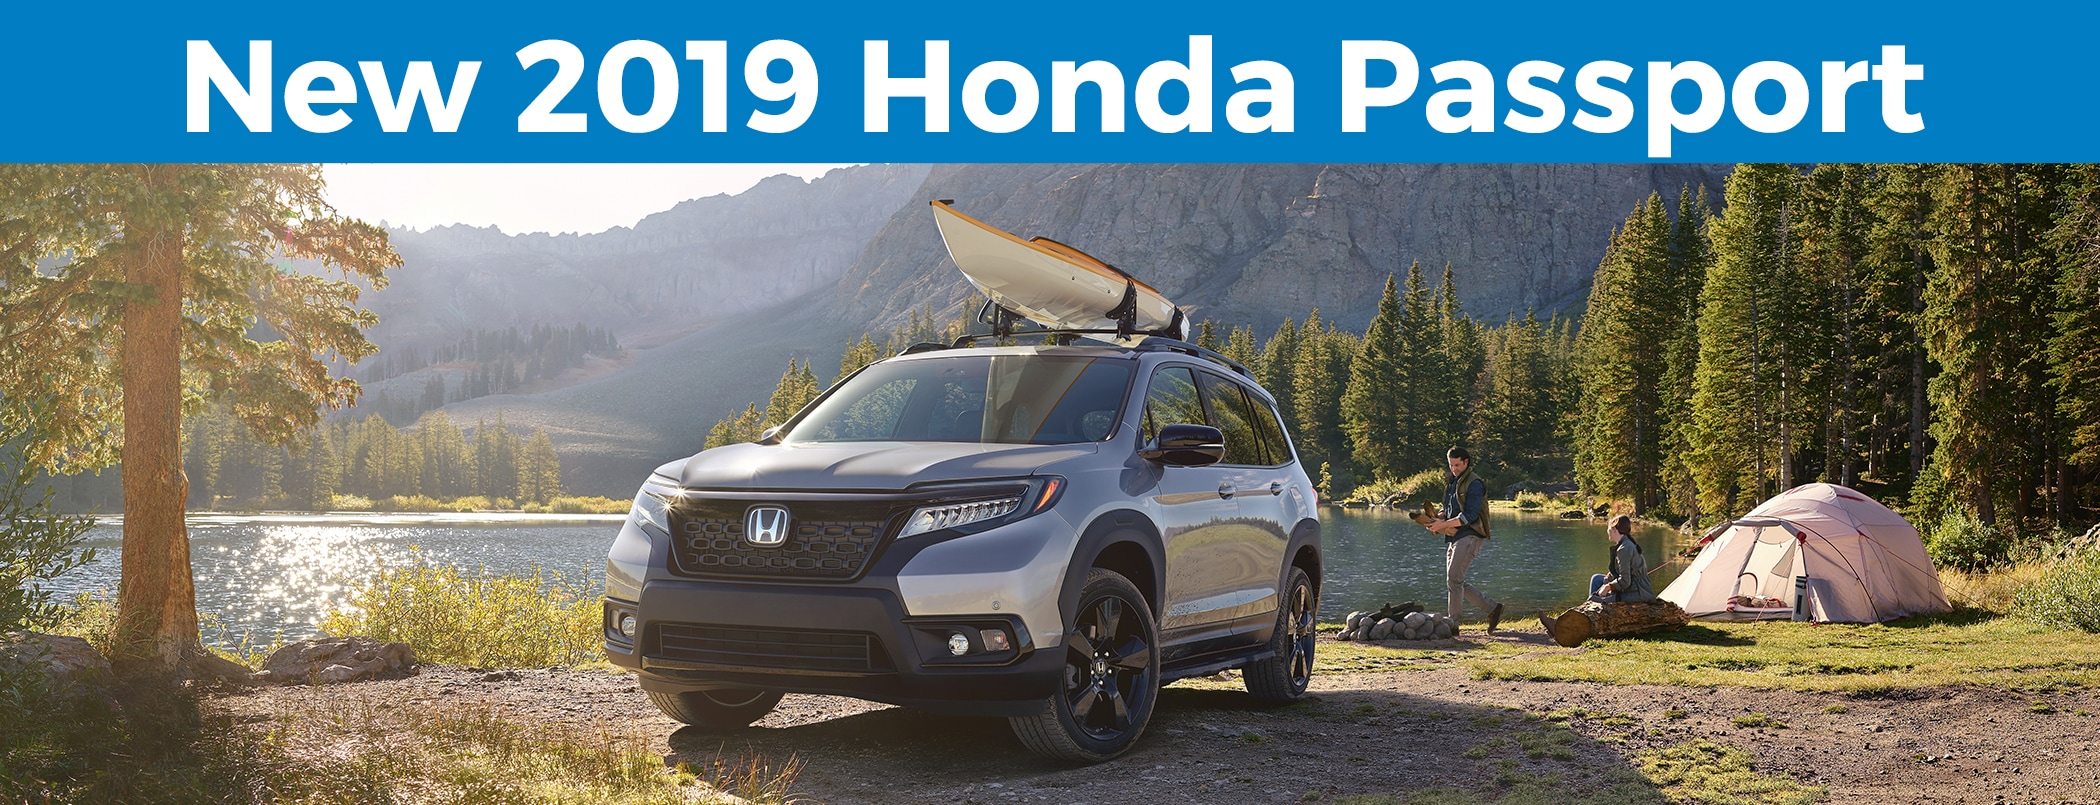 2019 Honda Passport Review Sandy